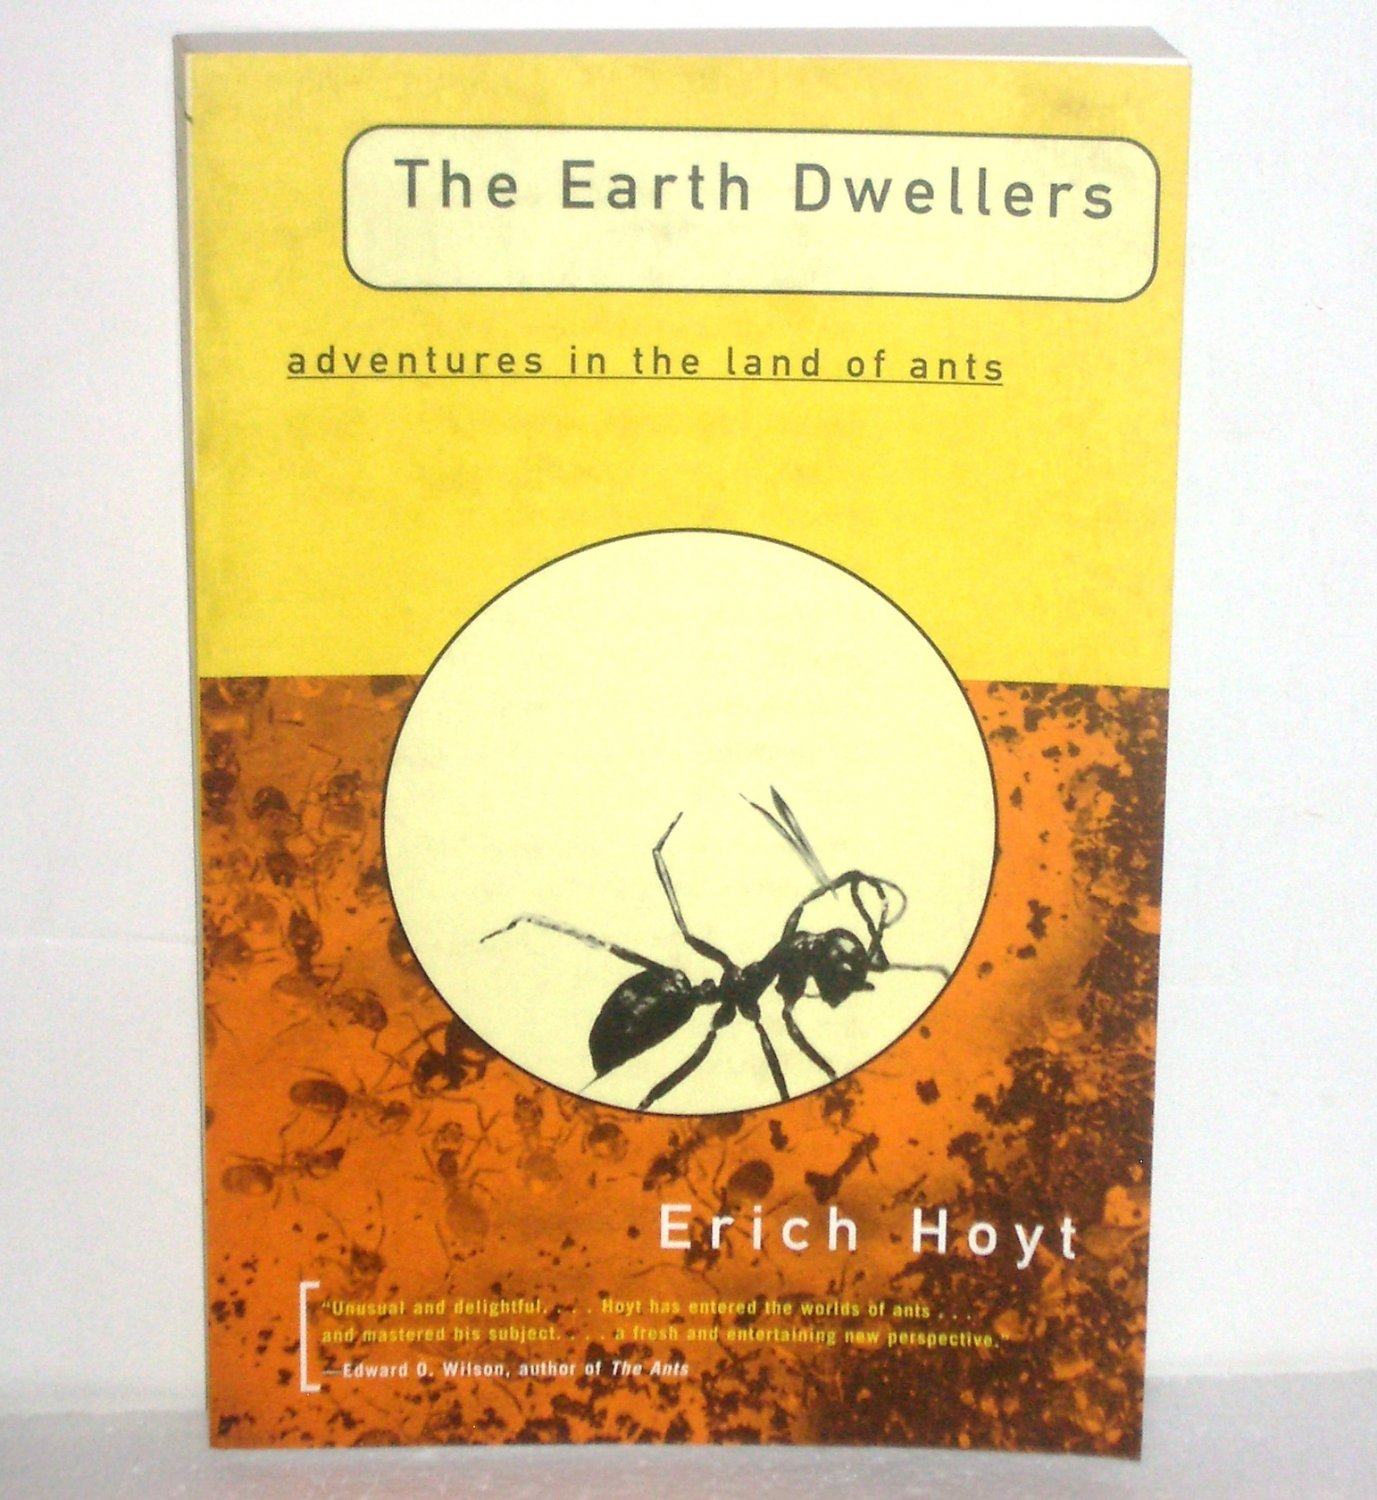 Earth Dwellers Adventures in the Land of Ants by Erich Hoyt Trade Size 1997